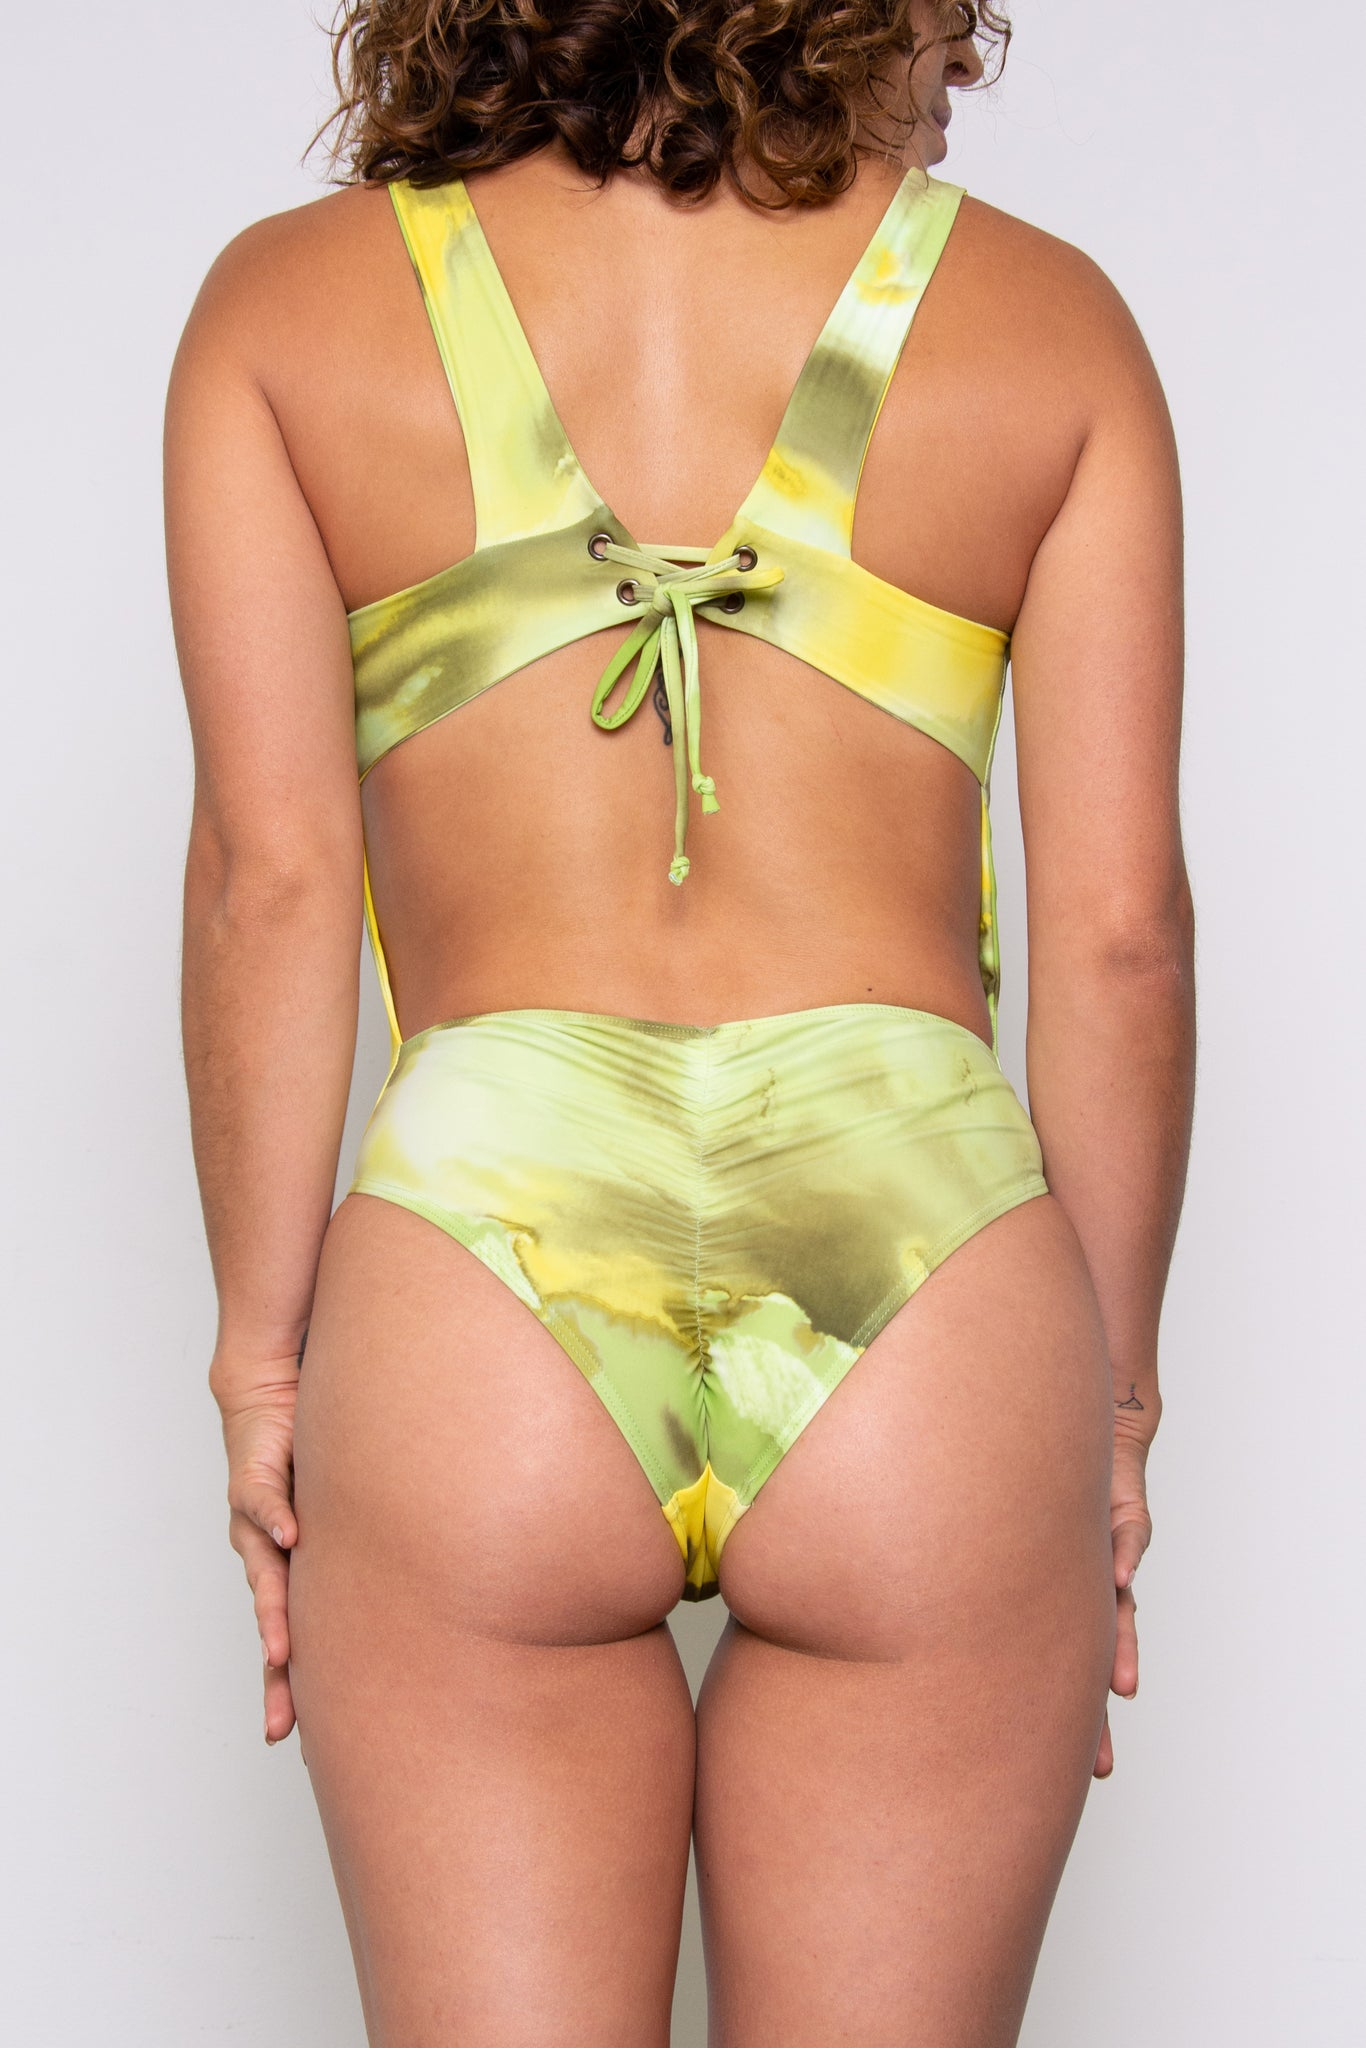 Claudia Renee Bodysuit - Key Lime Pie